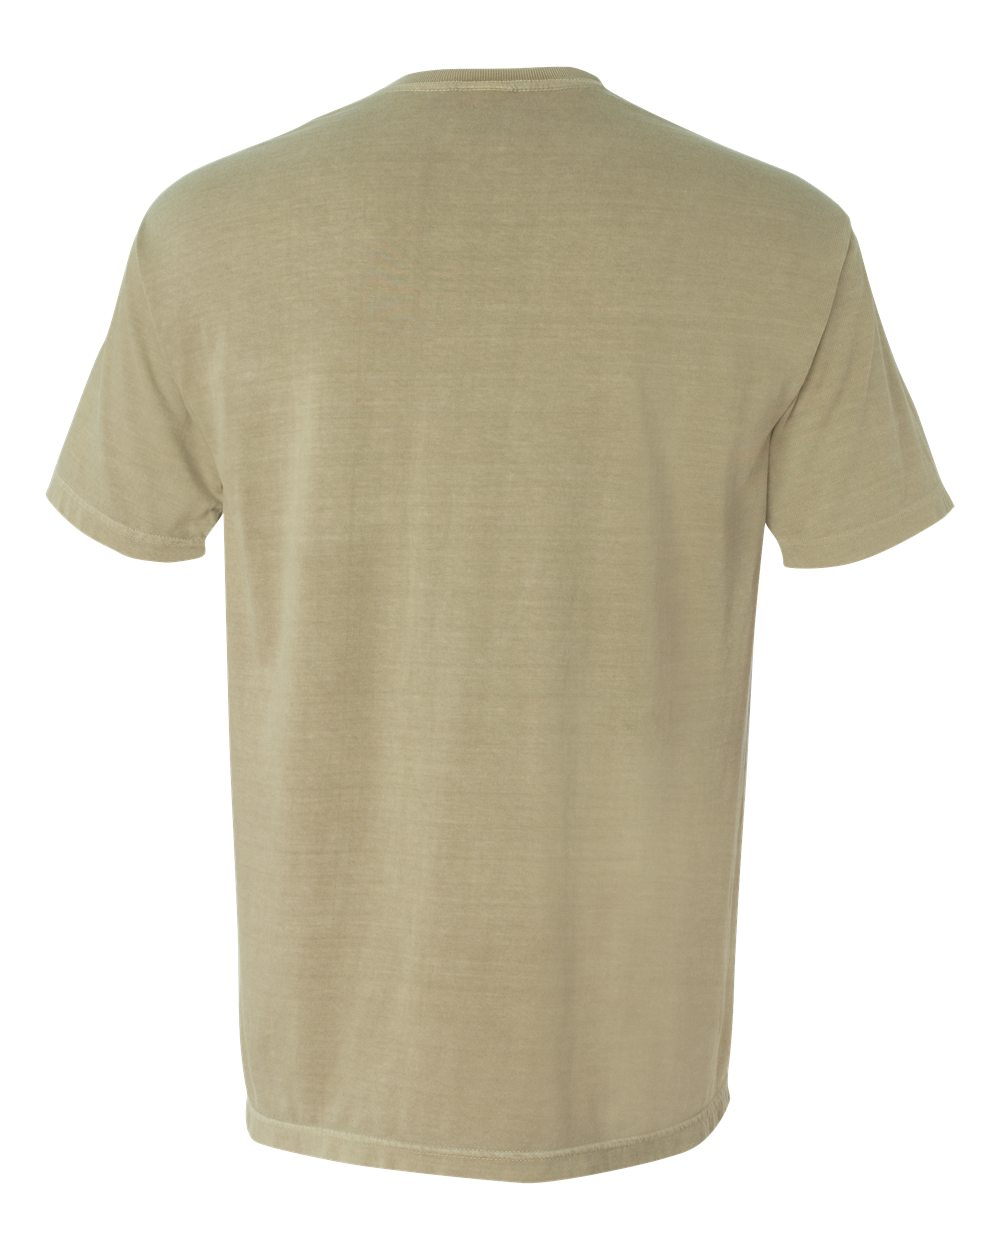 Comfort-Colors-Men-039-s-6-1-oz-Garment-Dyed-Pocket-T-Shirt-6030CC-S-3XL thumbnail 52